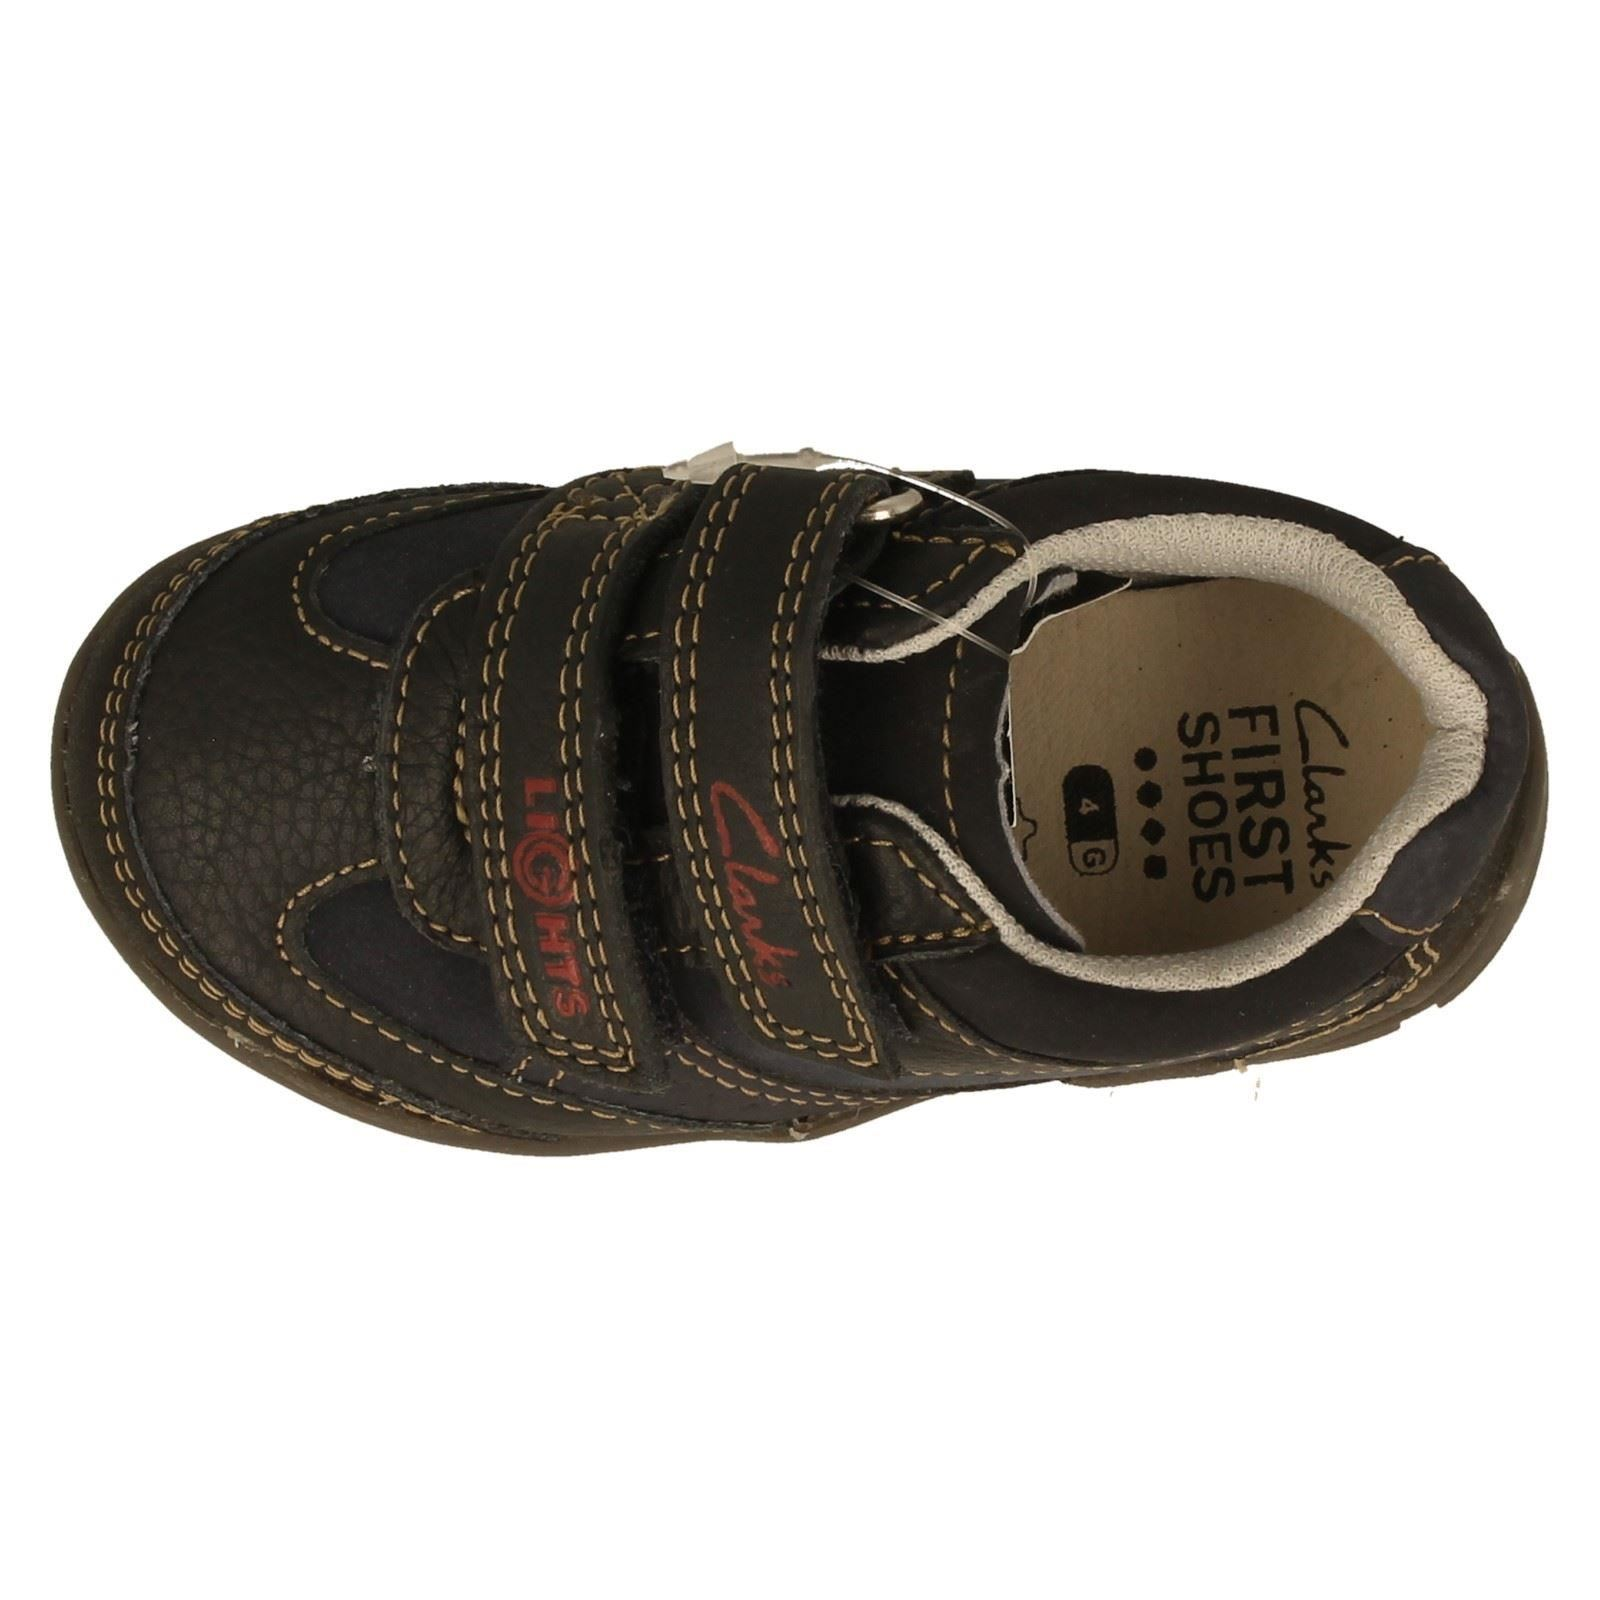 Boys Clarks Casual First Shoes Label Flashtime